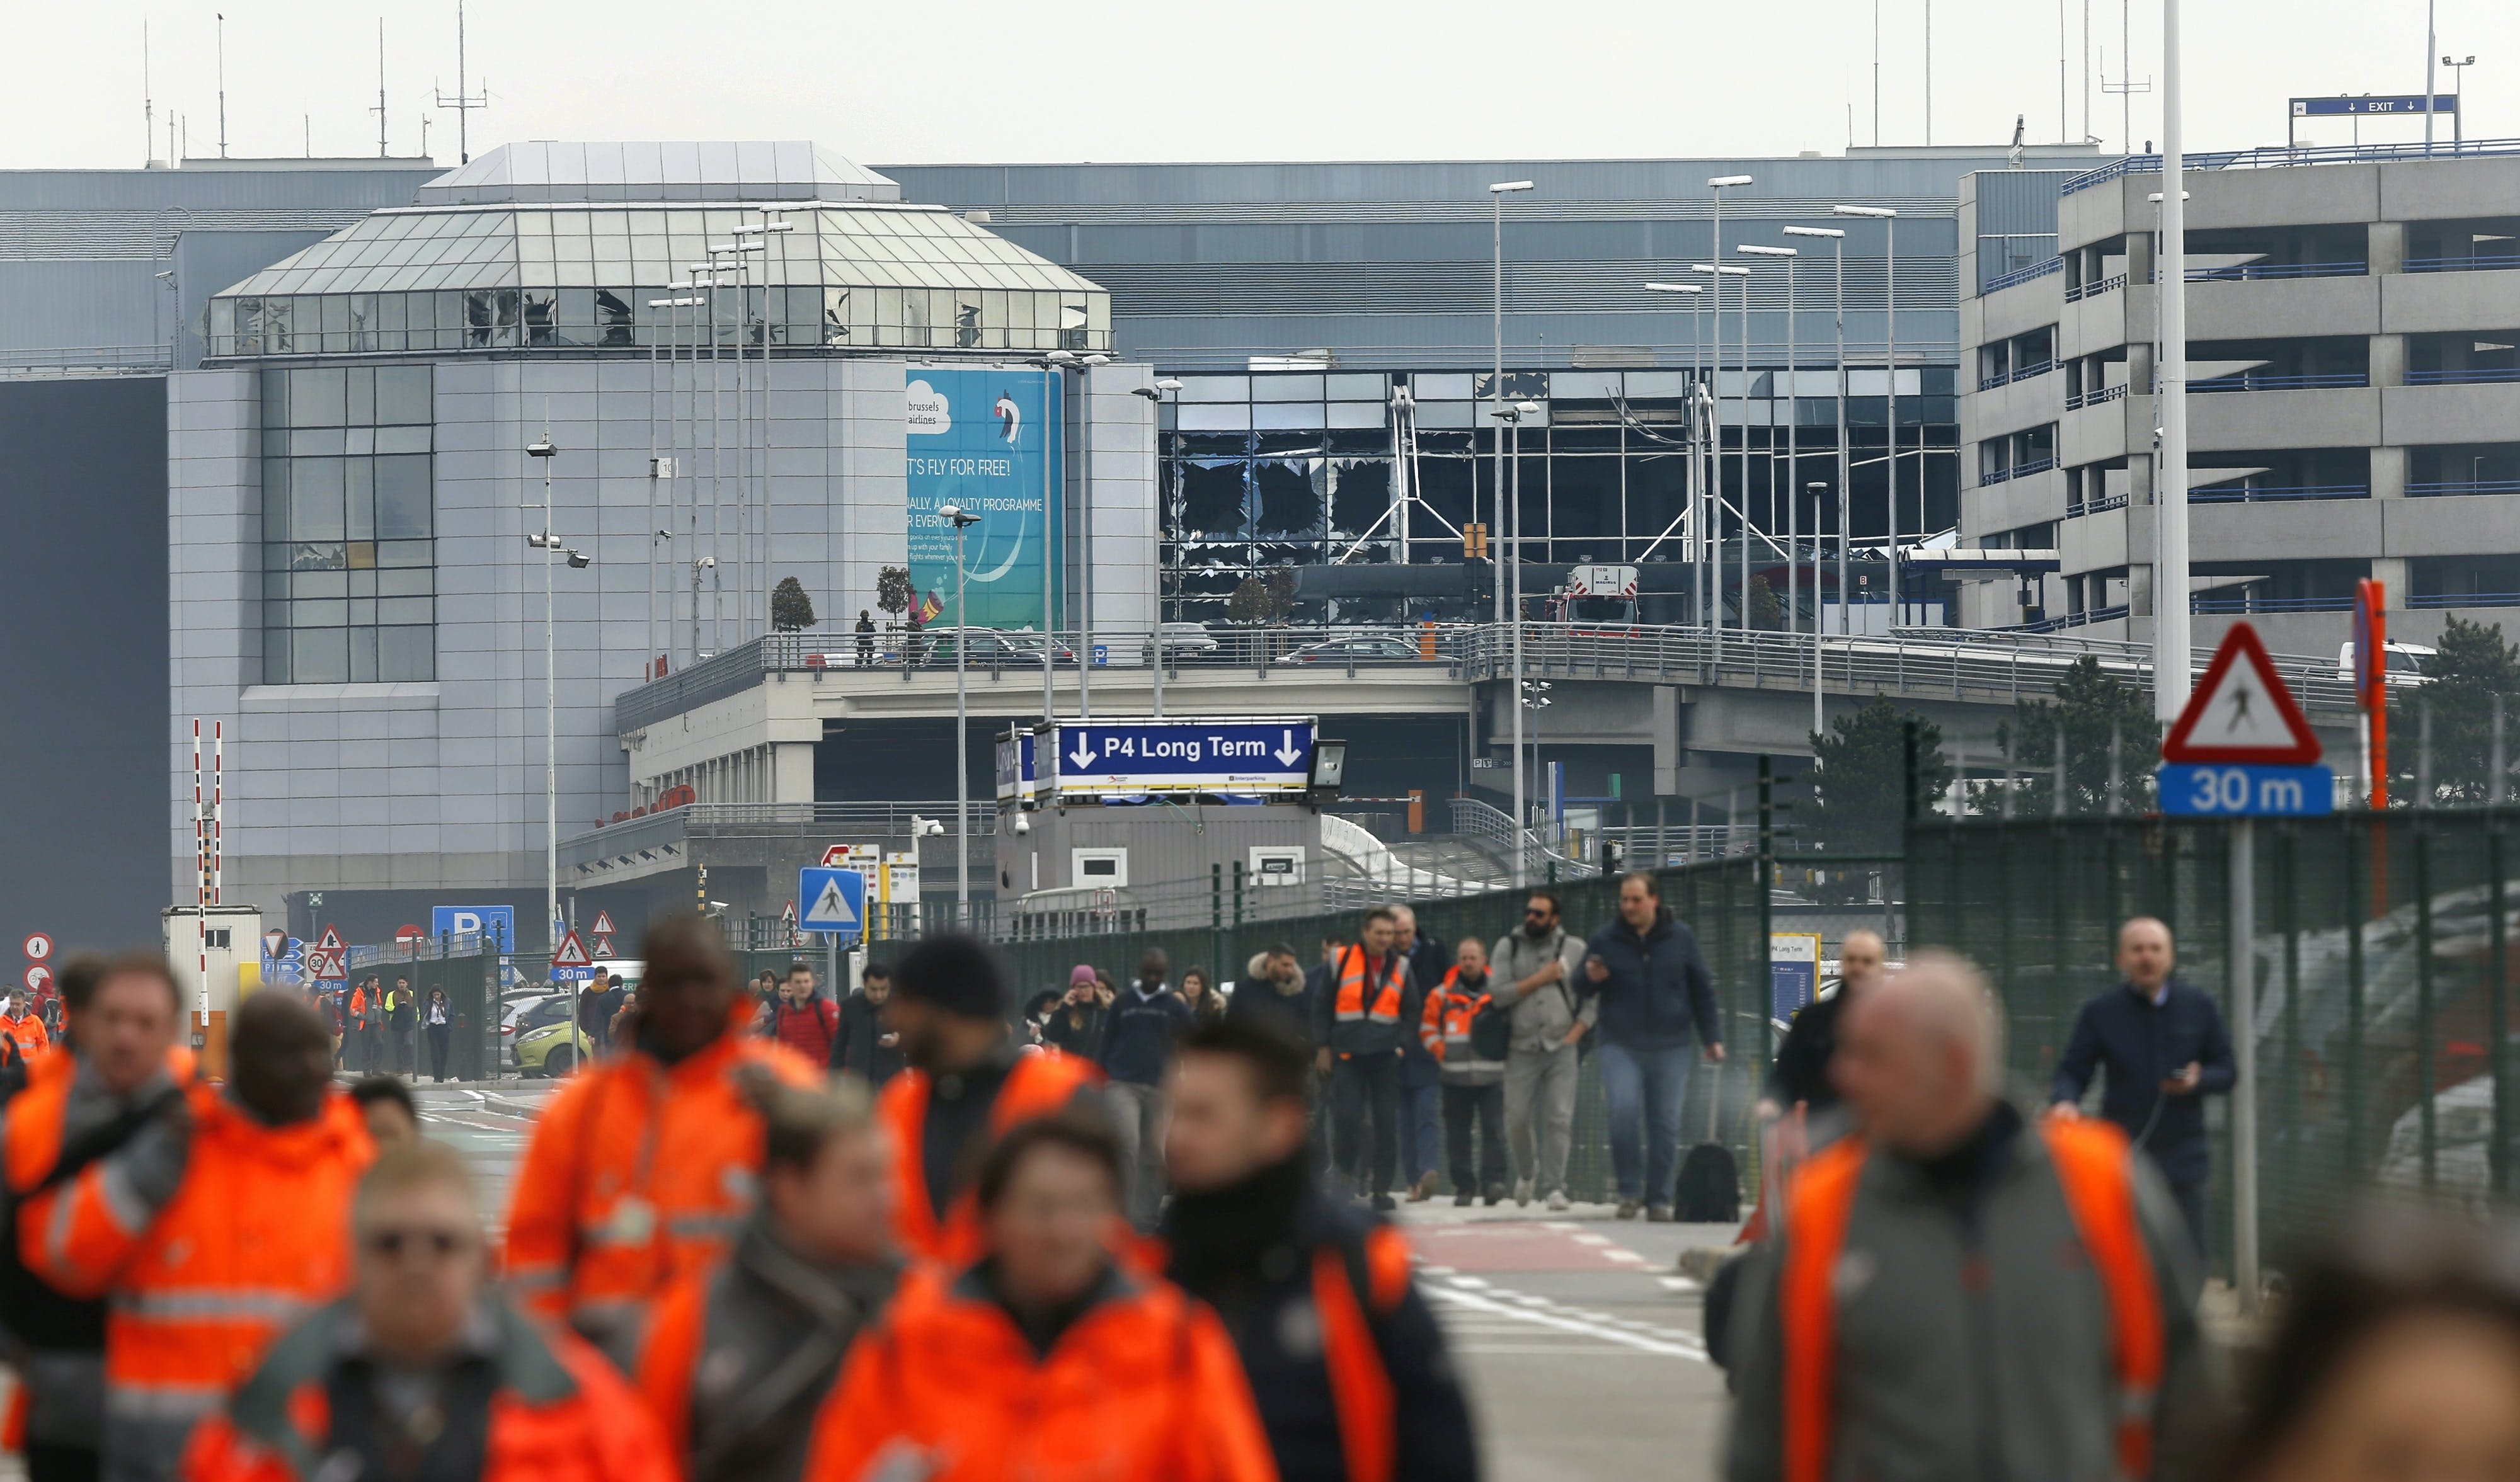 Latest Update: Explosions Strike Brussels, Claiming More Than 30 Lives So Far